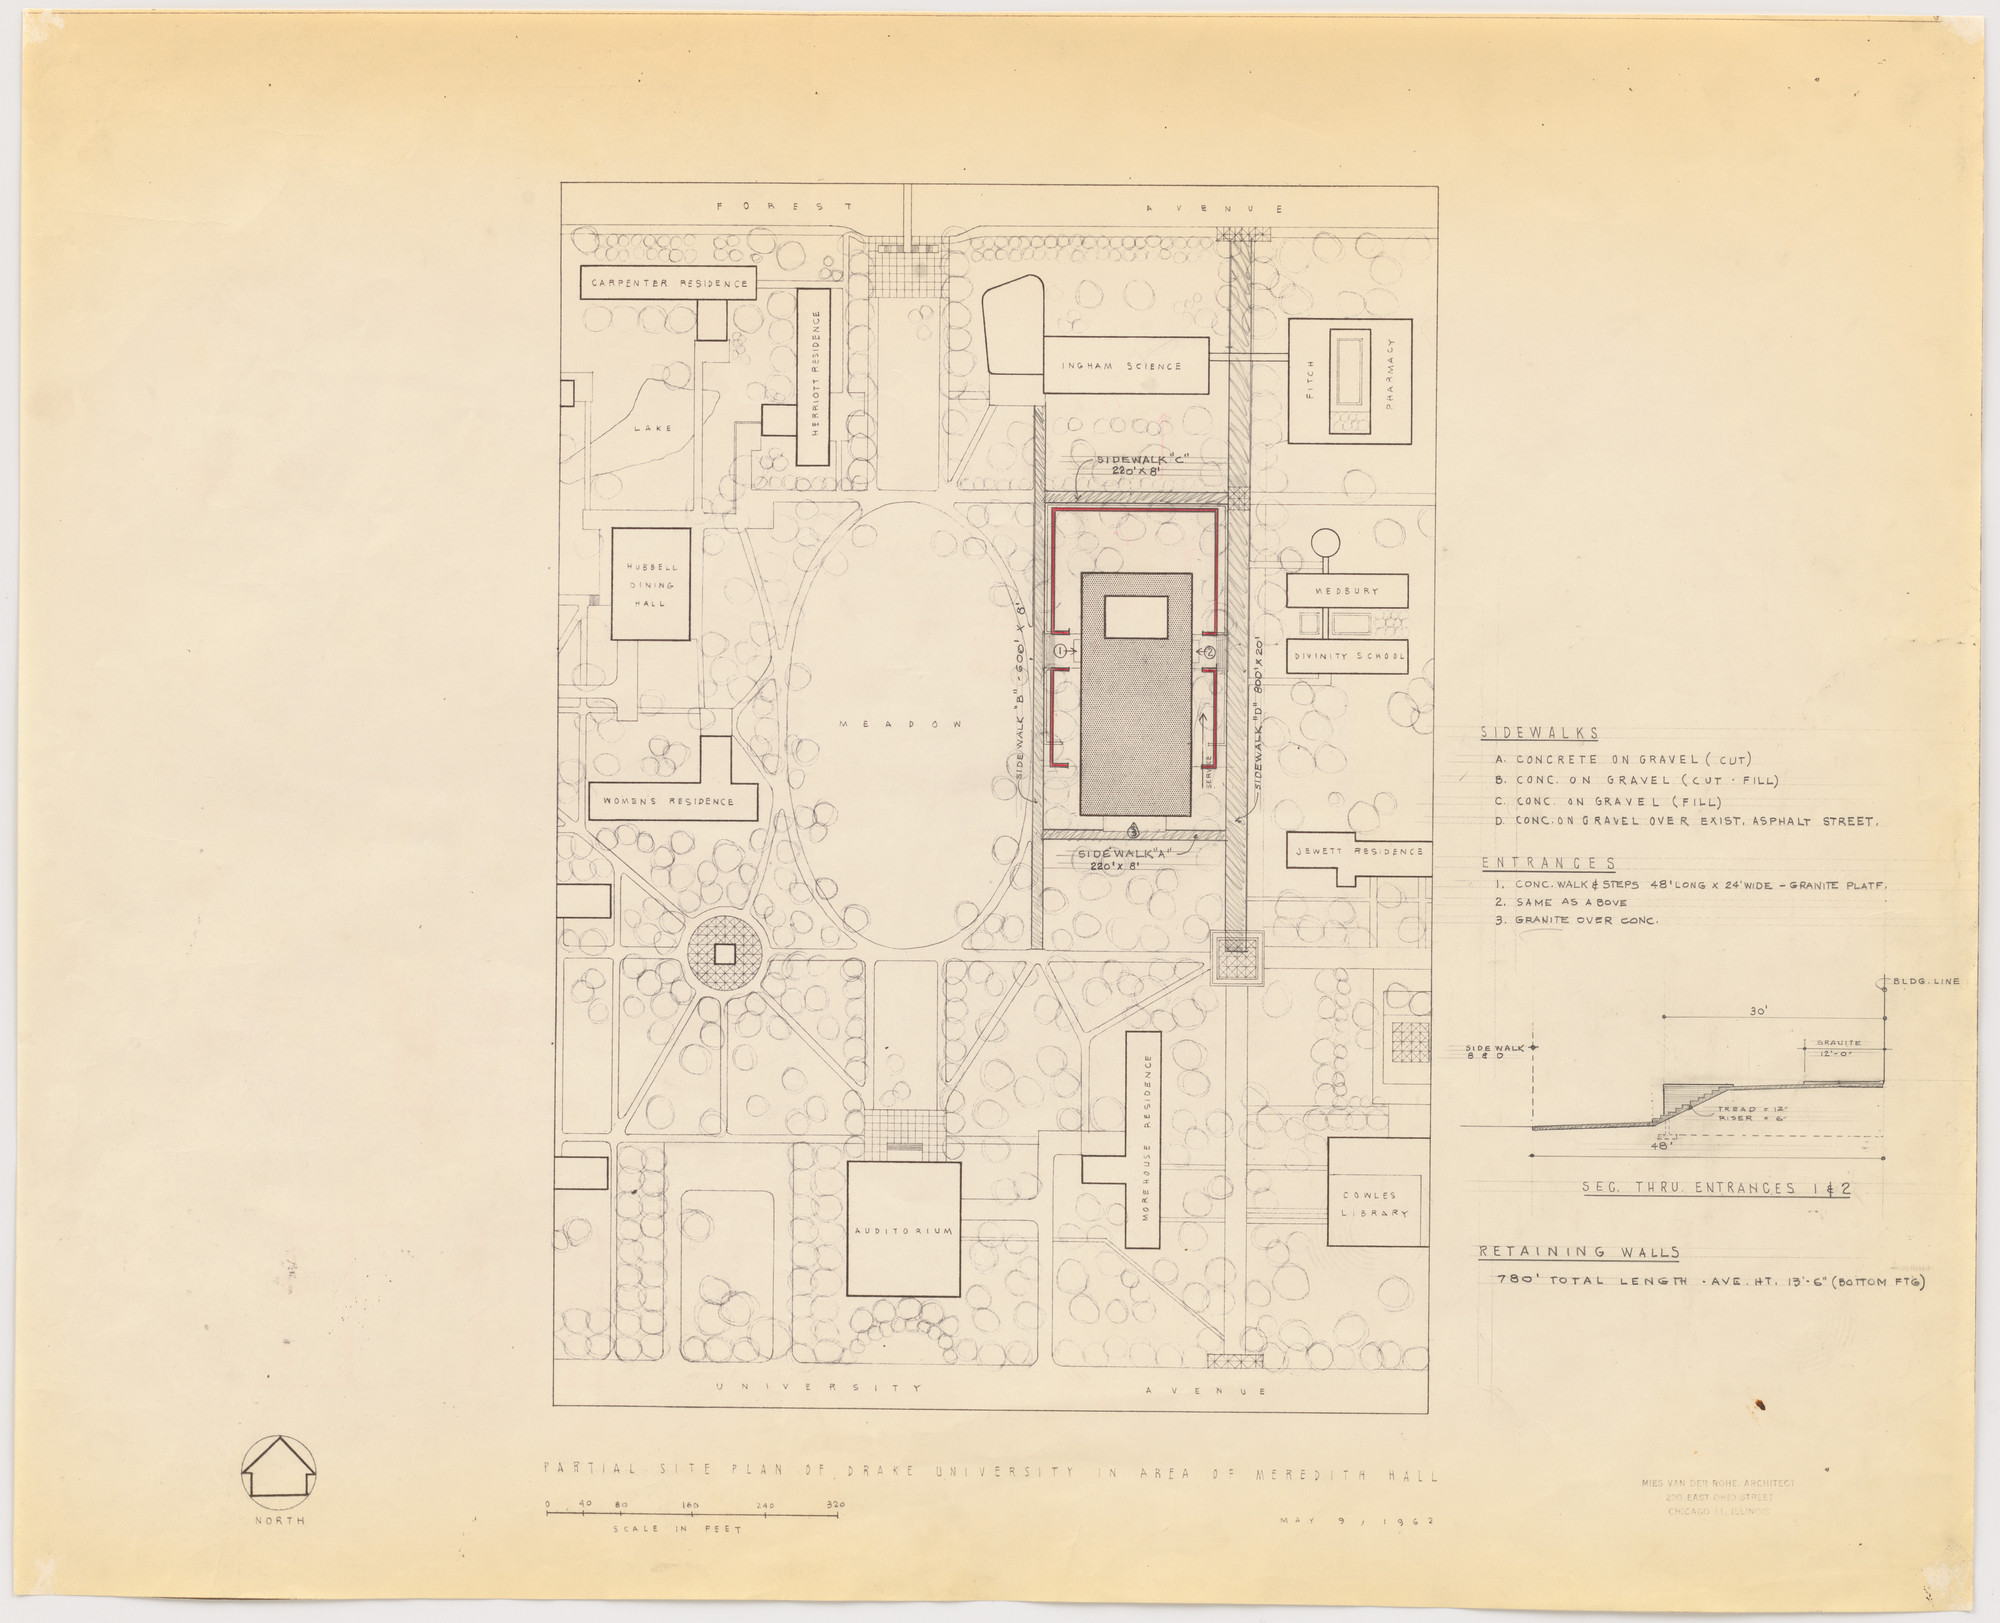 Ludwig Mies van der Rohe. Meredith Memorial Hall, Drake University, Des Moines, IA (Partial site plan). 1962–1965